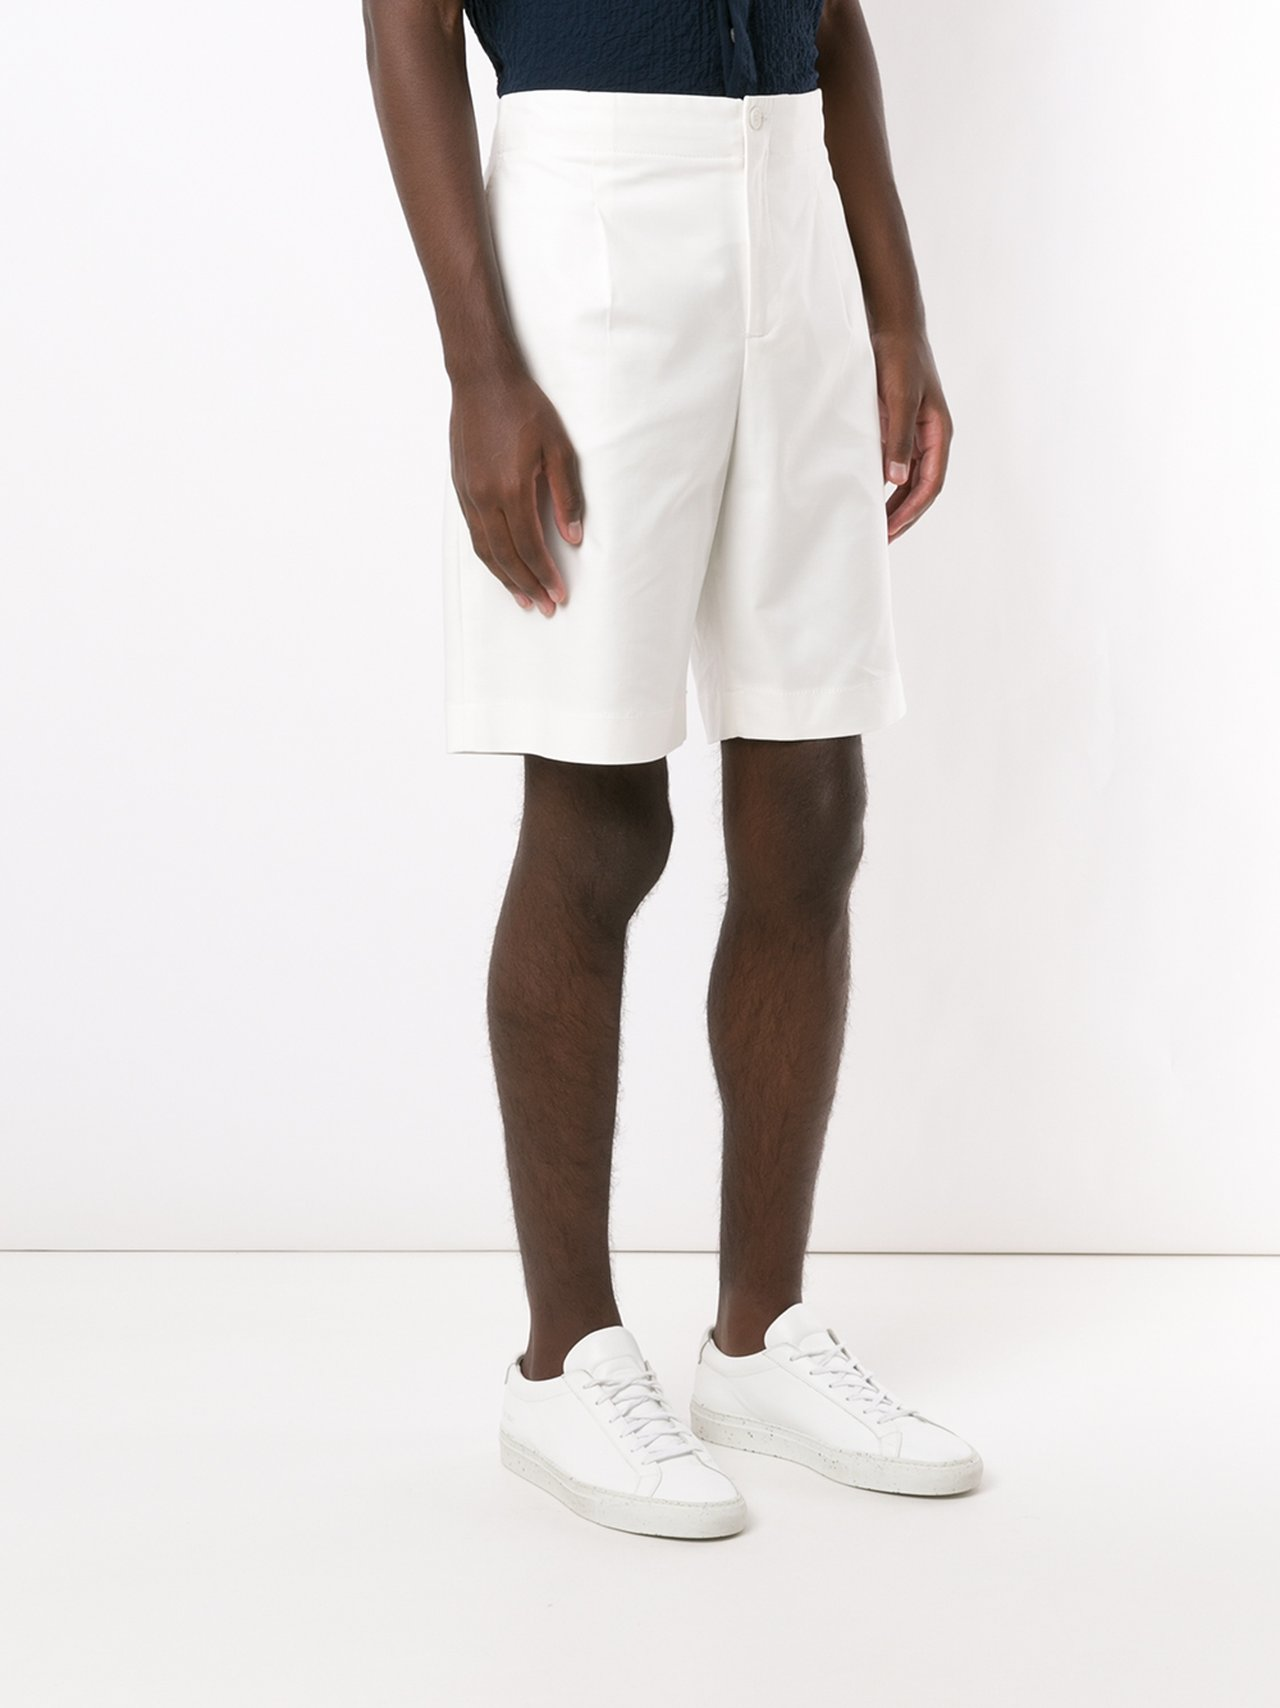 Bermuda Fivela Cotton